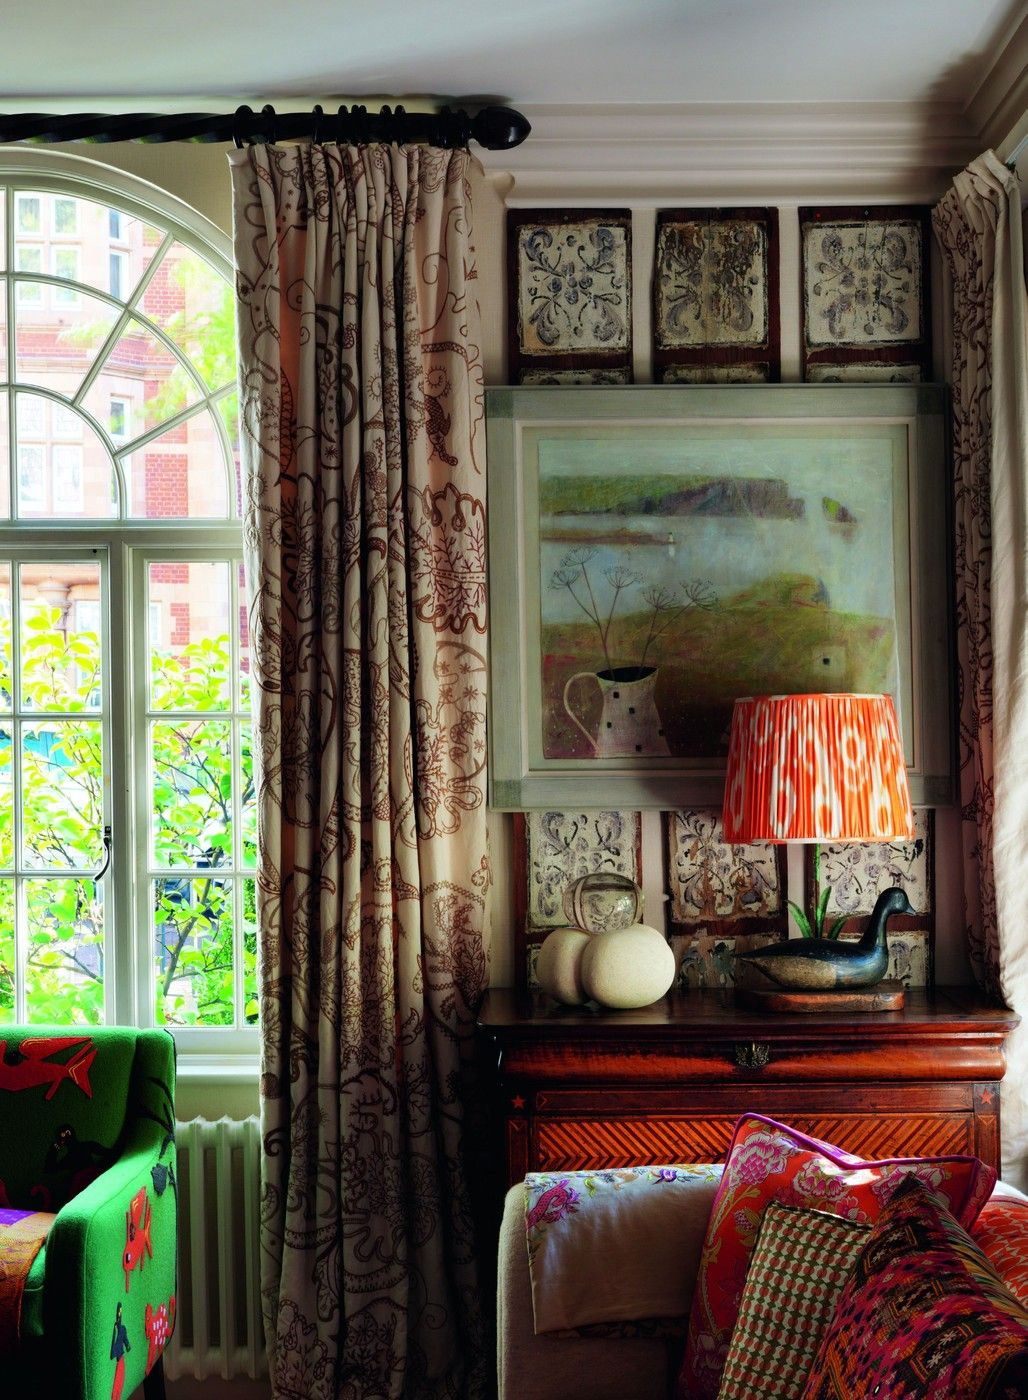 Tiles Design For Living Room Wall: Eclectic Wall Decor, Decor